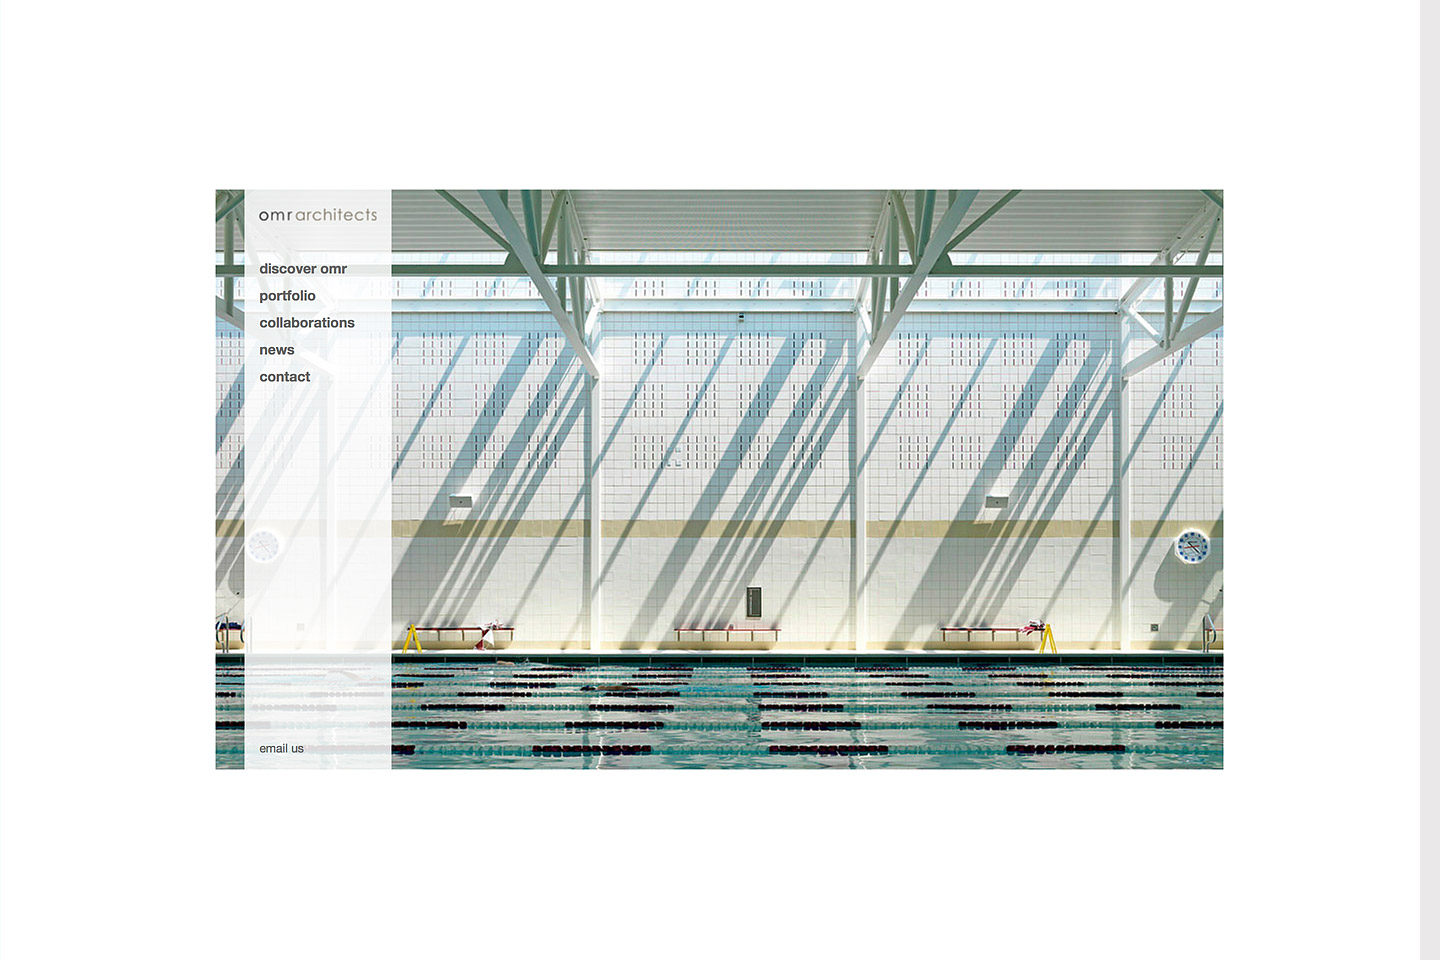 a screen capture of the omr architects homepage, featuring a large background image of the pool at the beede natatorium & fitness center